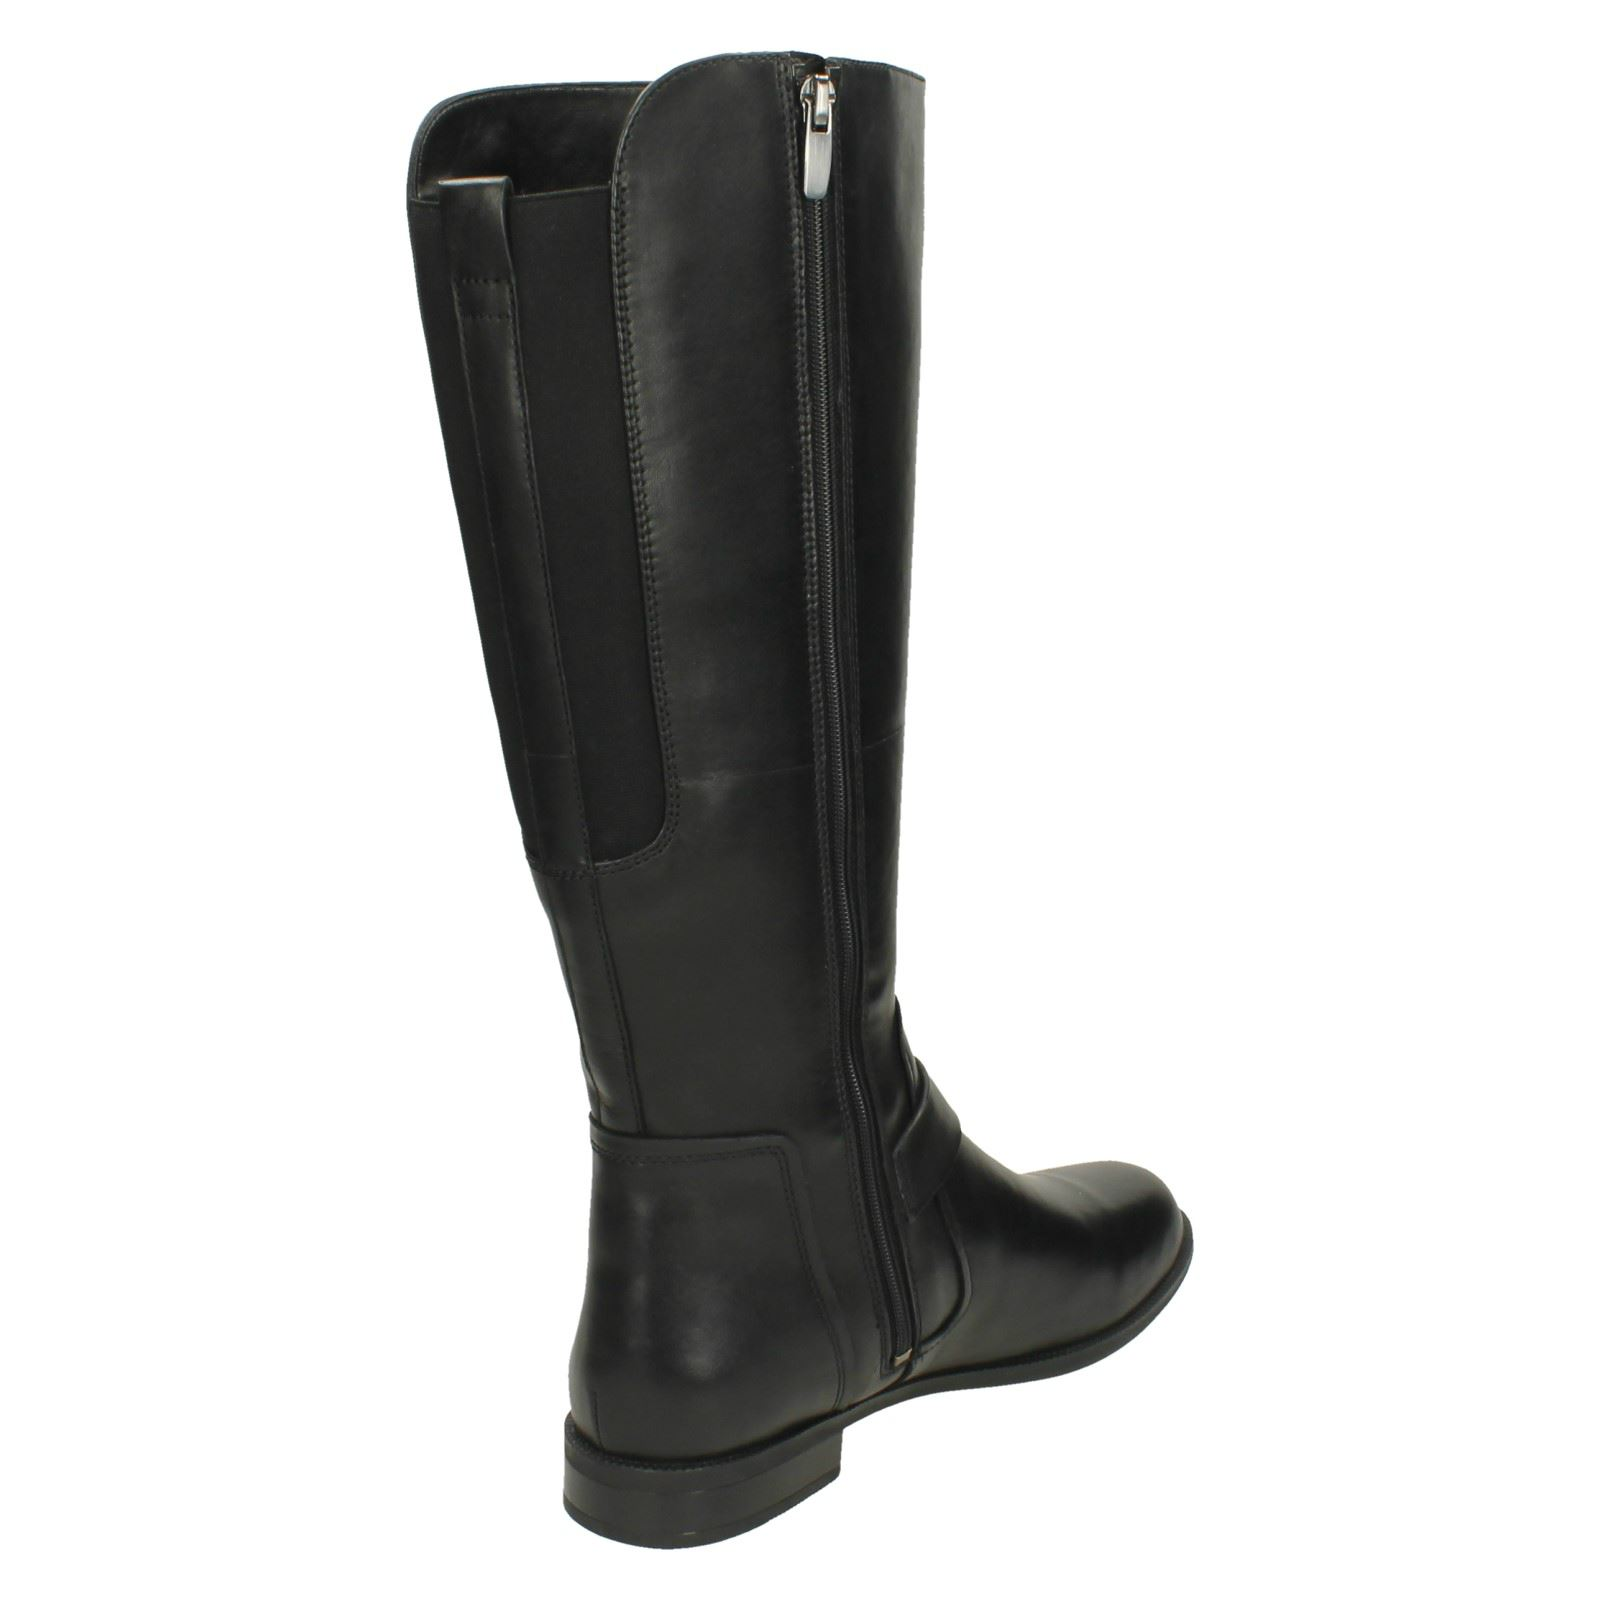 Ladies Clarks Clarks Clarks Casual Zip Up Knee High Boots Leather Boots Mint Treat 9ffa2a